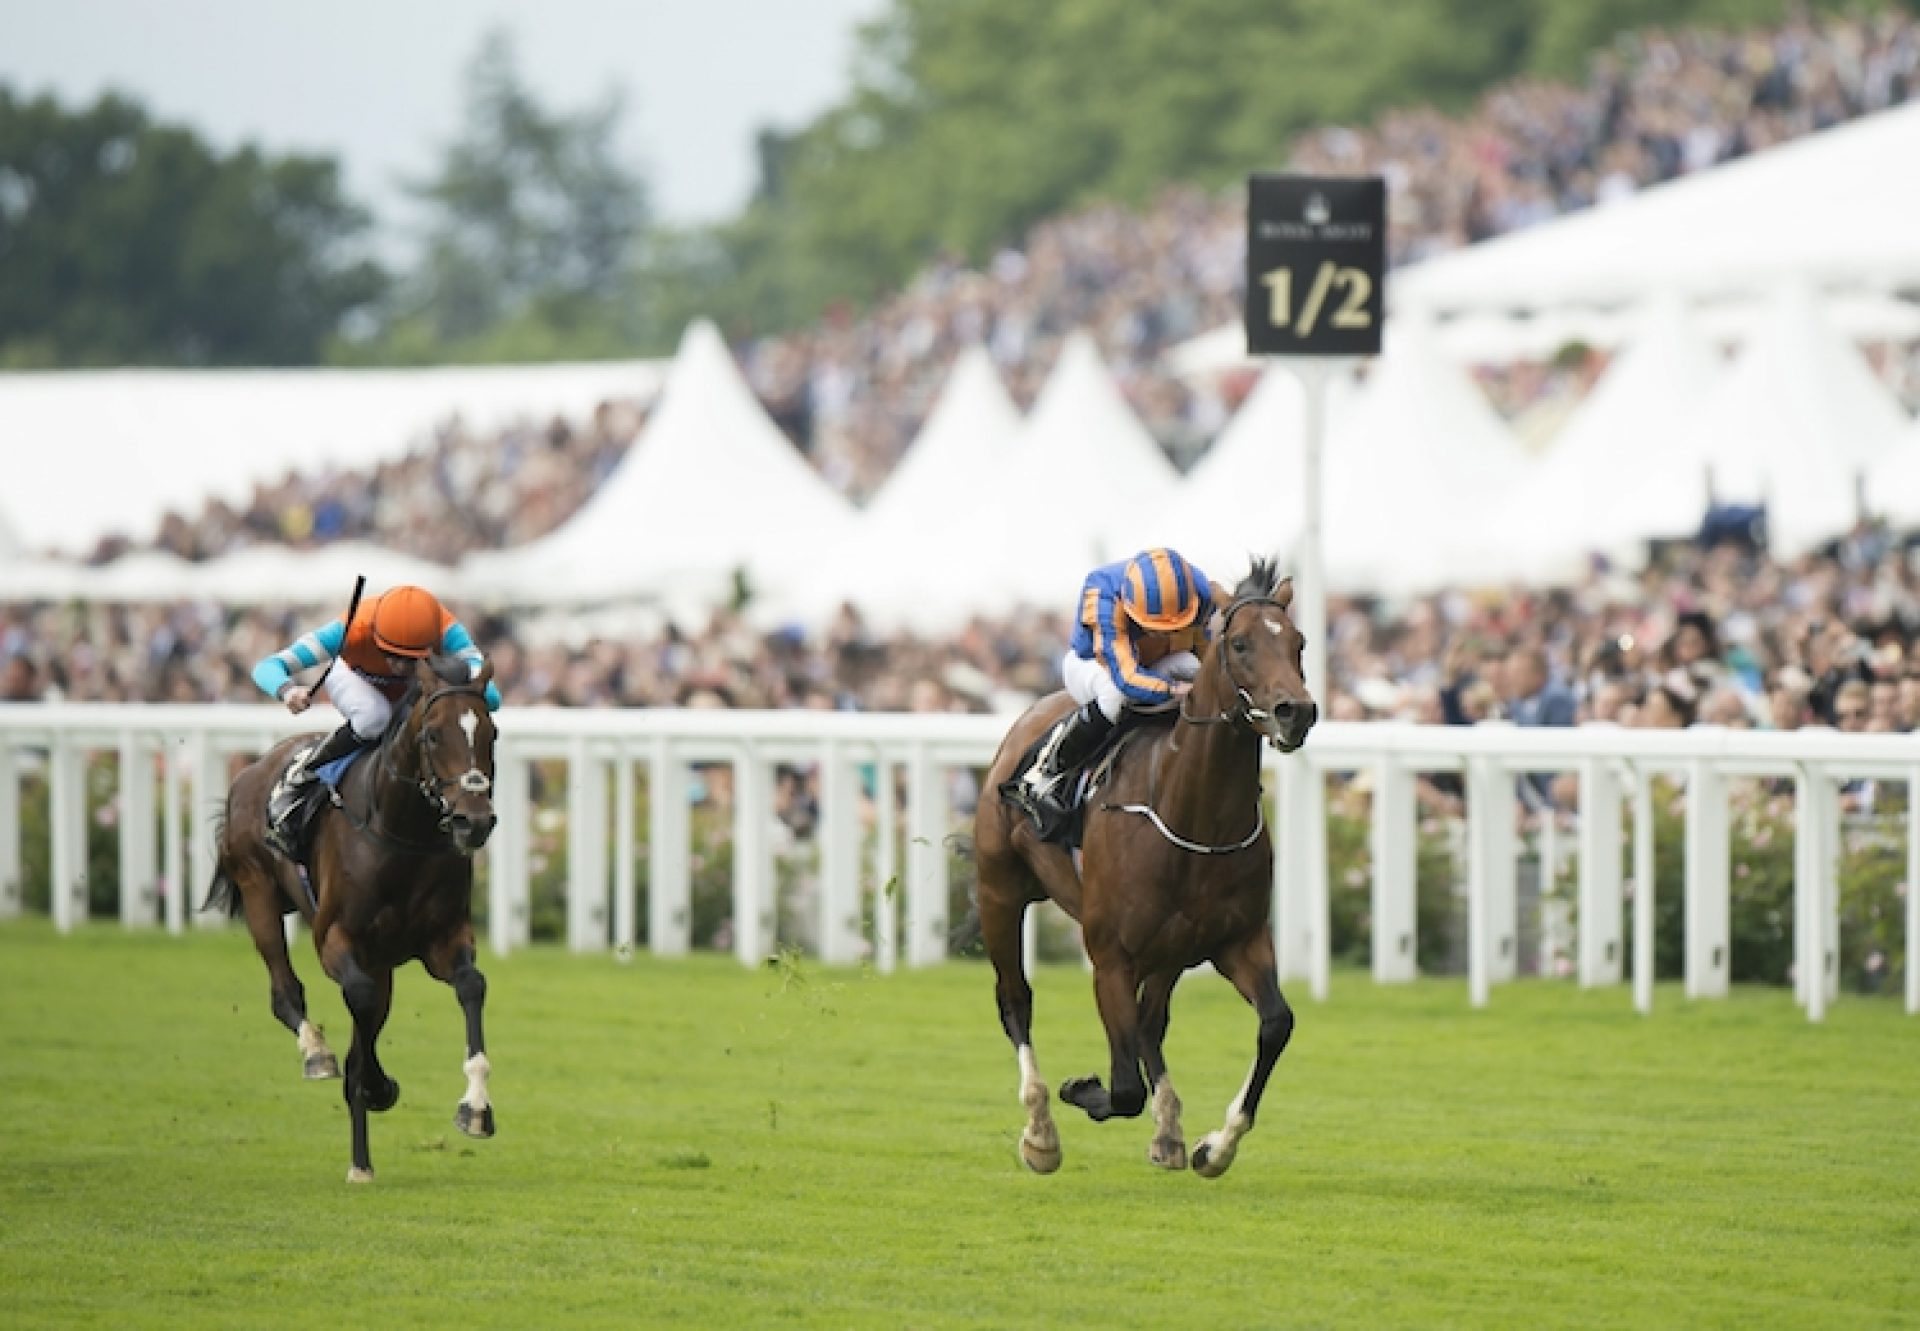 Churchill (Galileo) winning the Chesham Stakes (L) at Royal Ascot